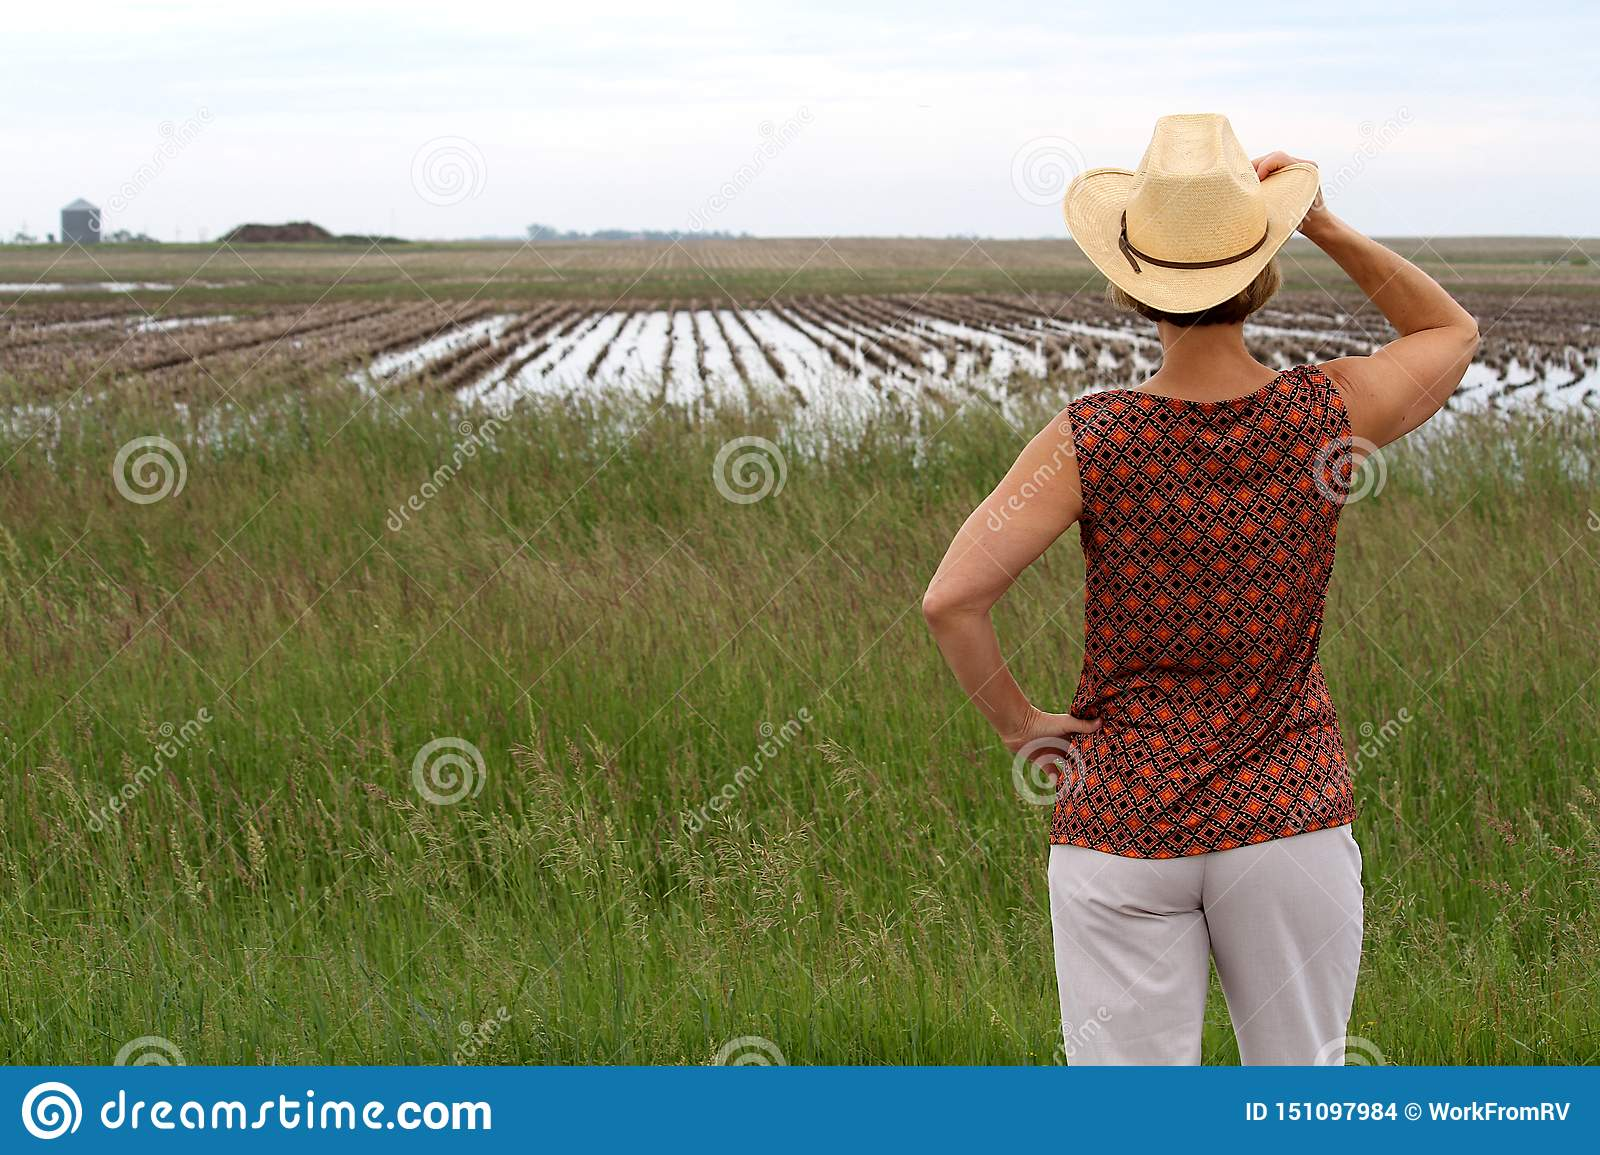 Woman holding cowboy hat looking at a farm field full of water.